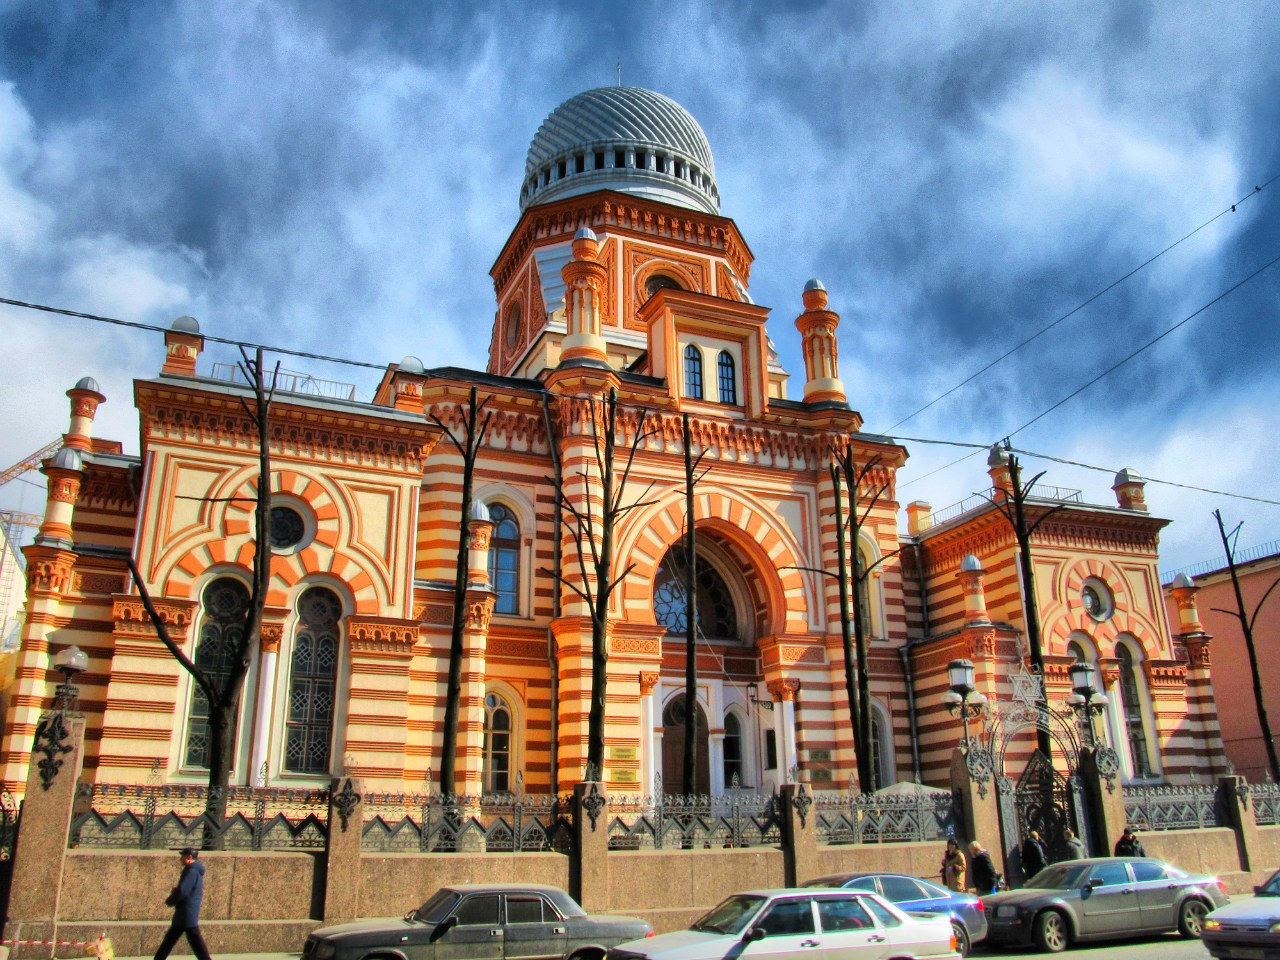 Grand Choral Synagogue – beautiful religious site